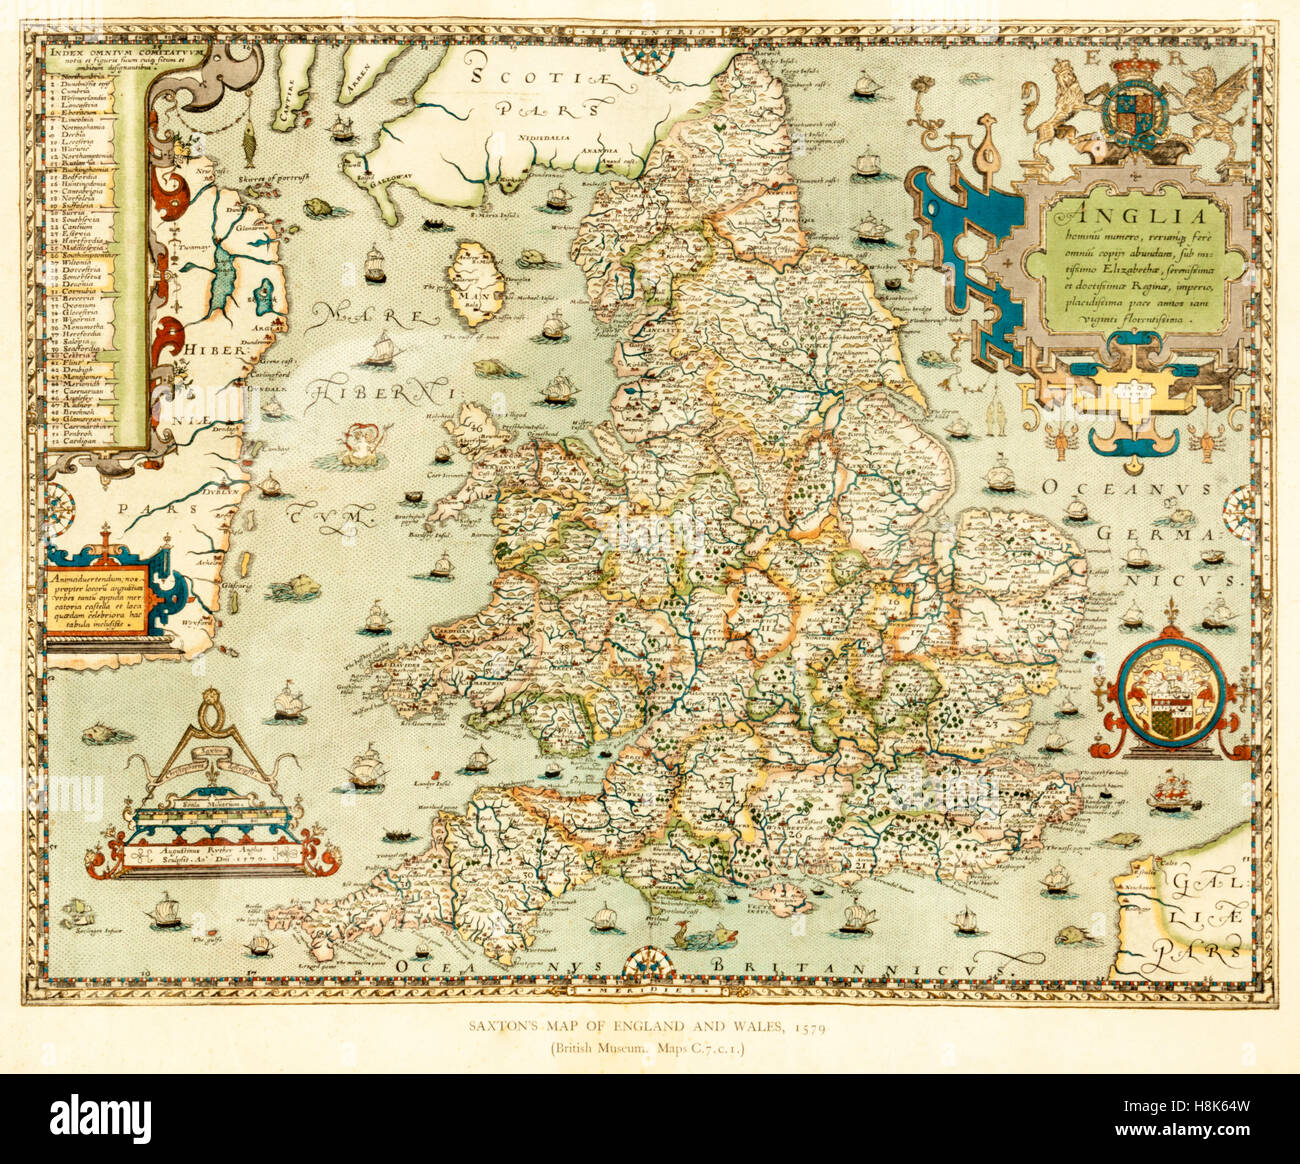 Atlas Map Of England.Christopher Saxton S Map Of England And Wales 1579 Part Of Atlas